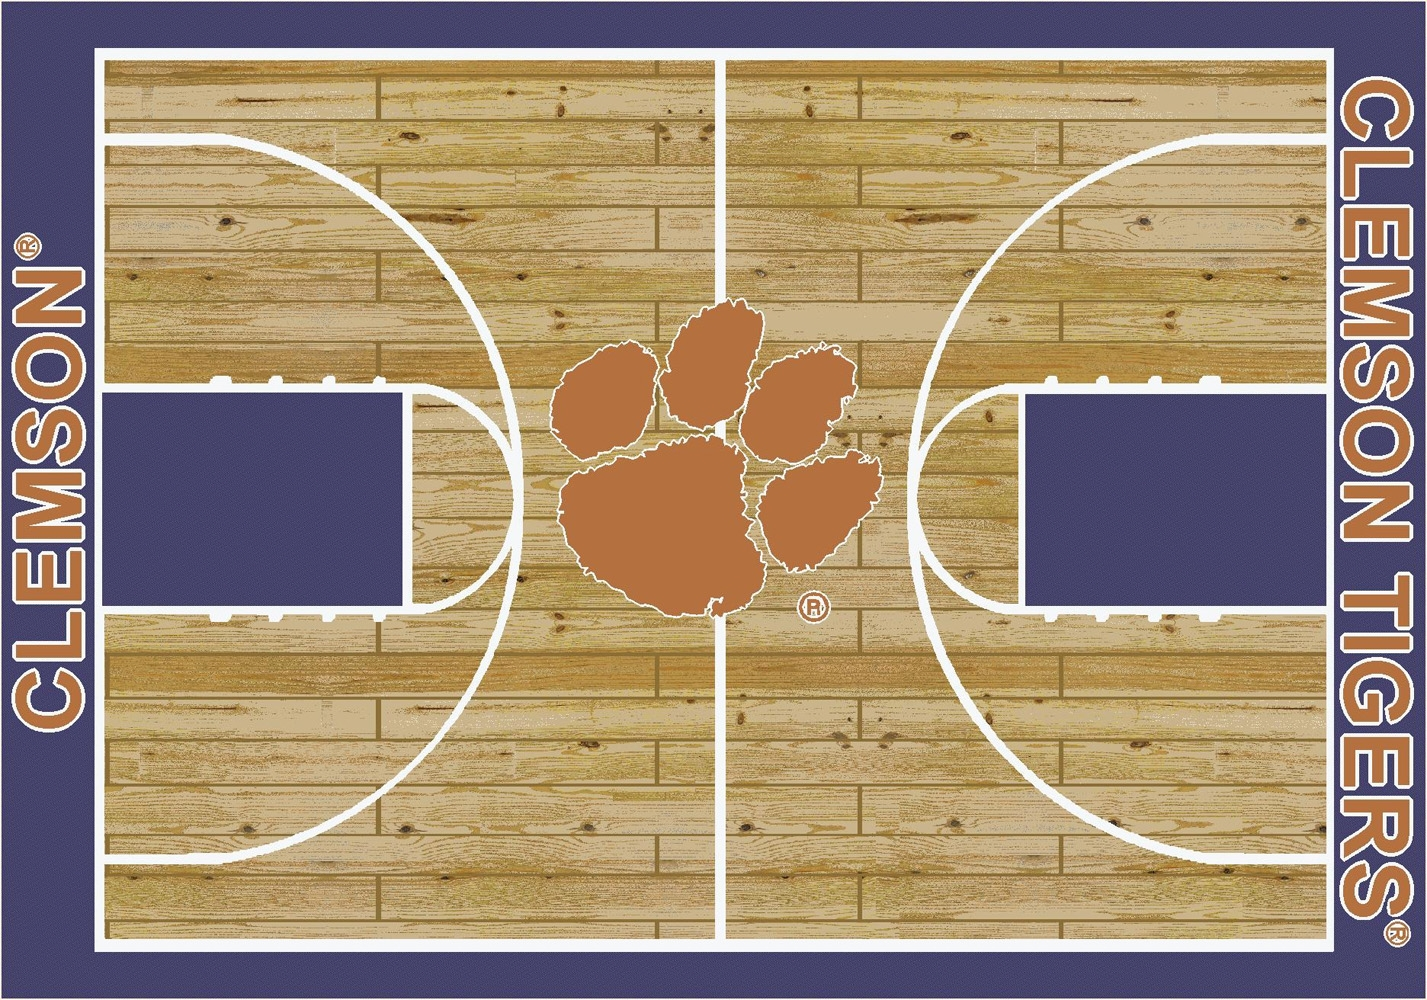 College Basketball Court Clemson 100 Stainmaster Stain